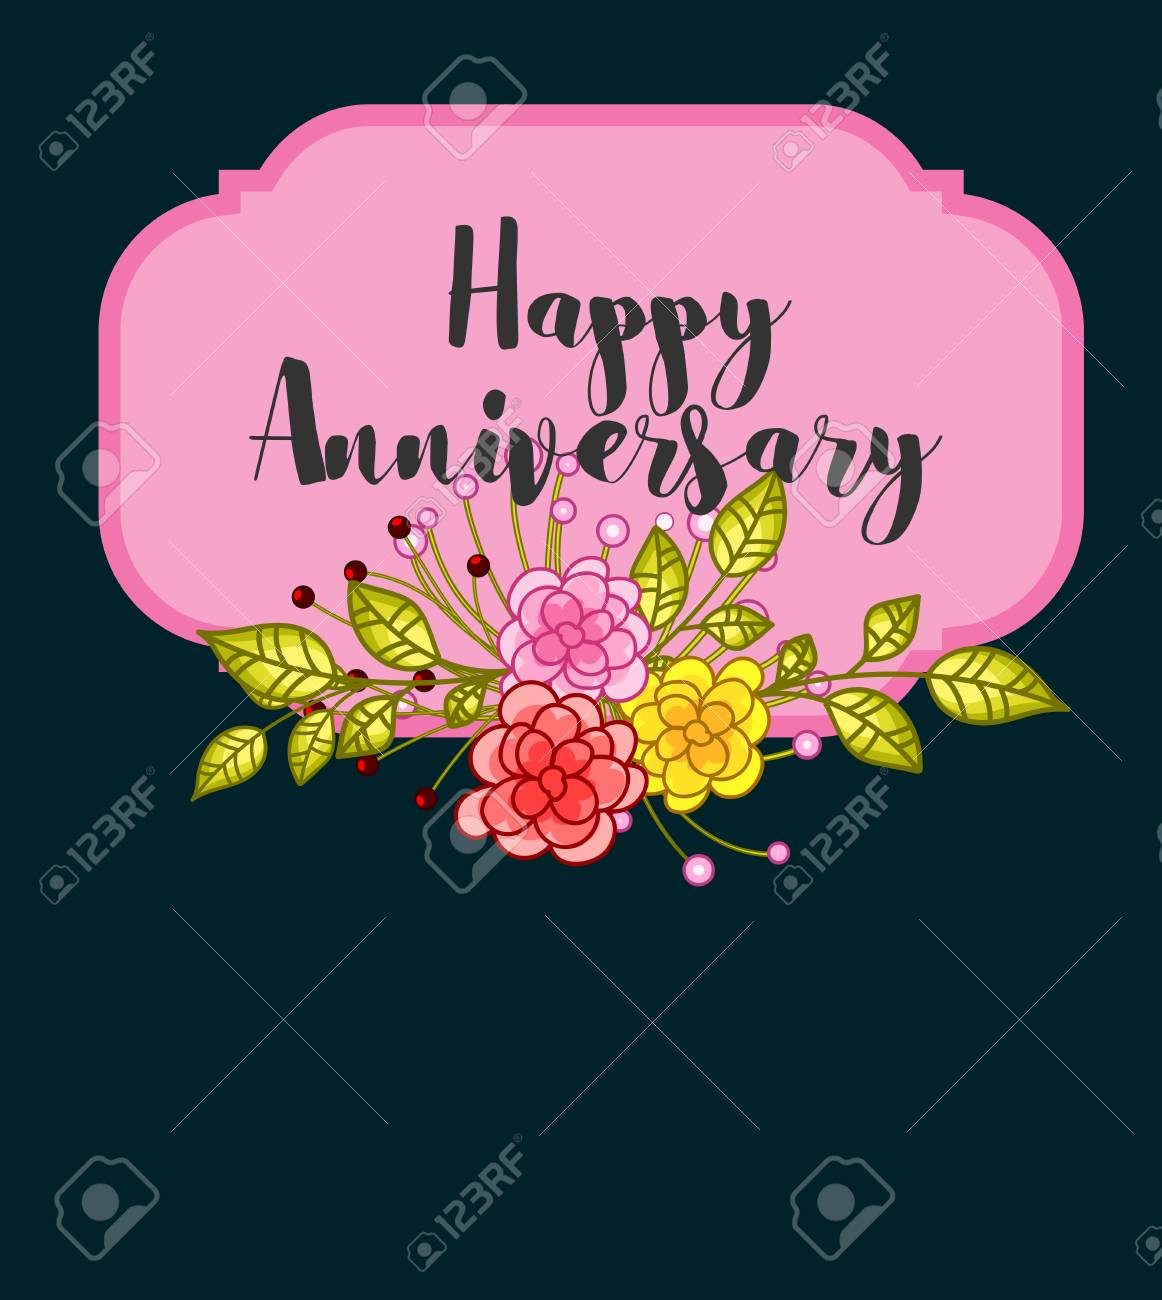 Happy Anniversary Flowers Banner Royalty Free Cliparts Vectors And